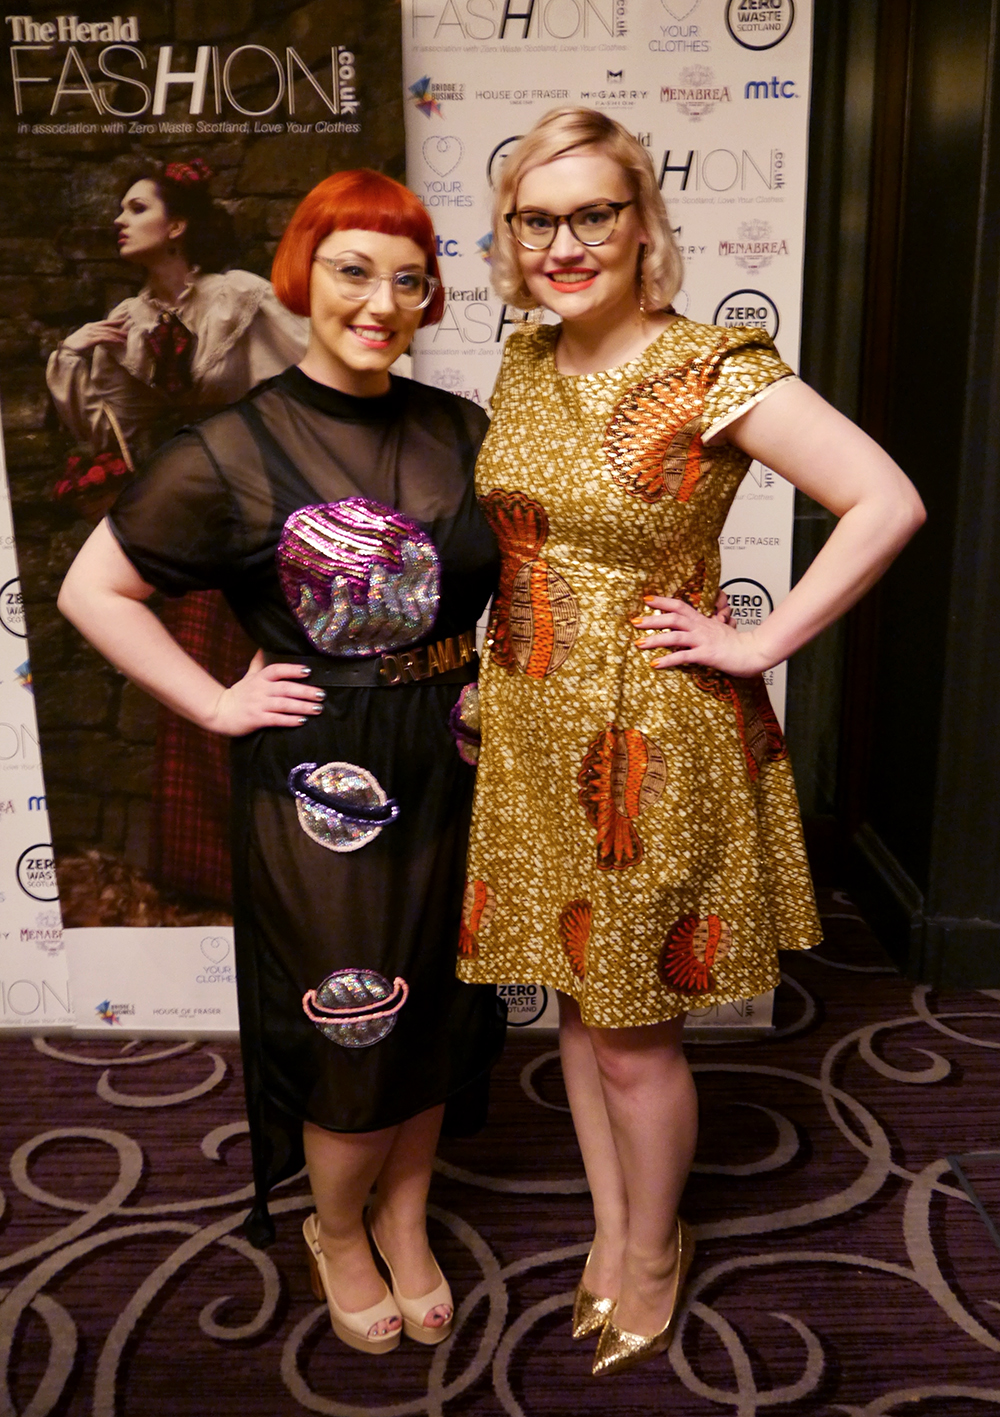 Isolated Heroes, Rowanjoy, Dreamland Clothing, IOLLA frames, Scottish design, Scottish blogger, Zero Waste Scotland, Love Your Clothes, awards party, Grand Central Hotel